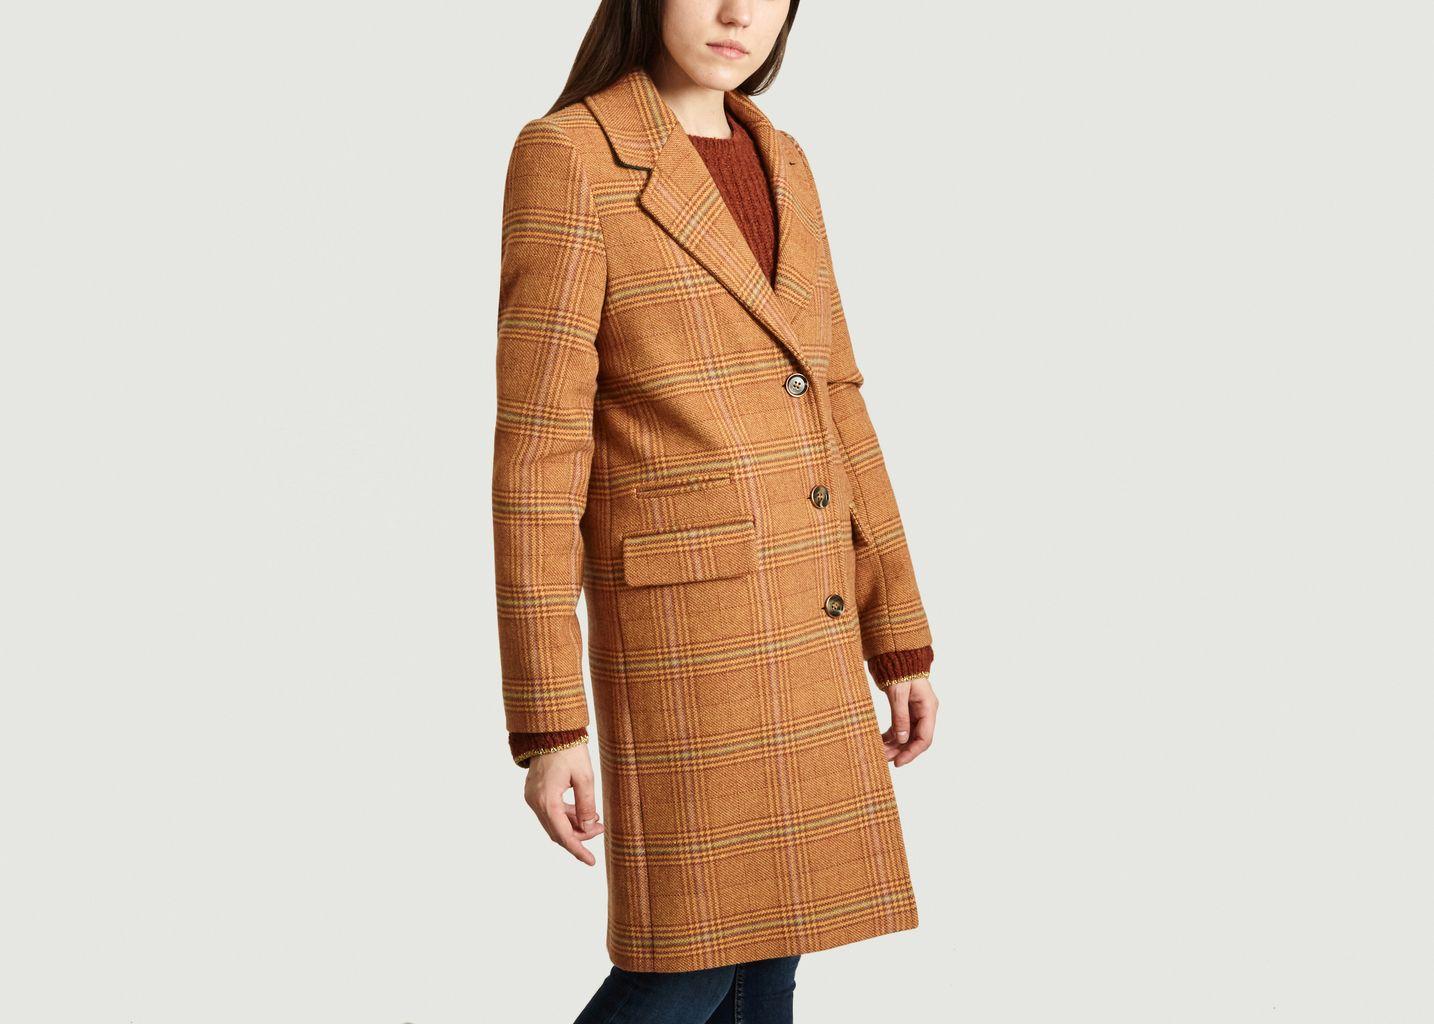 Manteau A Carreaux Ollieres - Trench And Coat